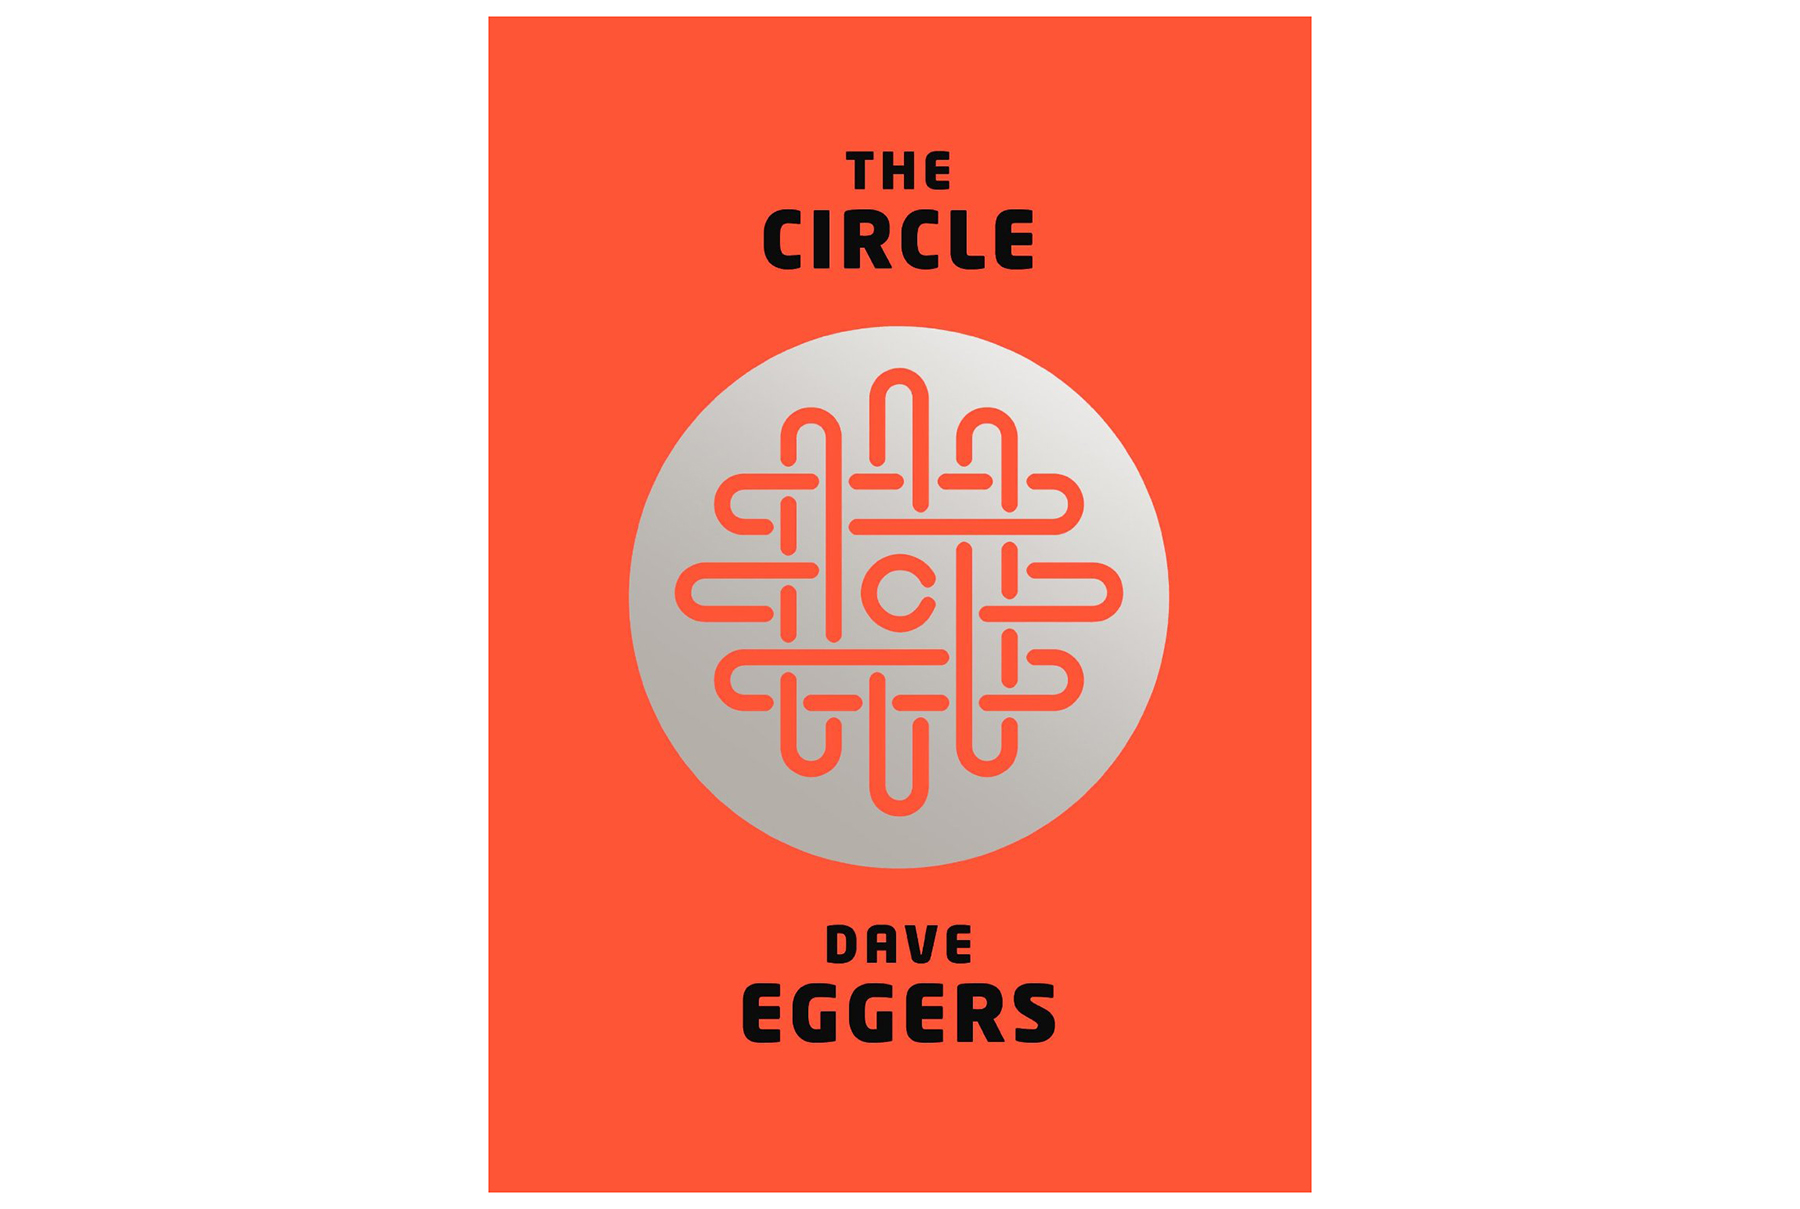 Olivia Wilde: The Circle, Dave Eggers